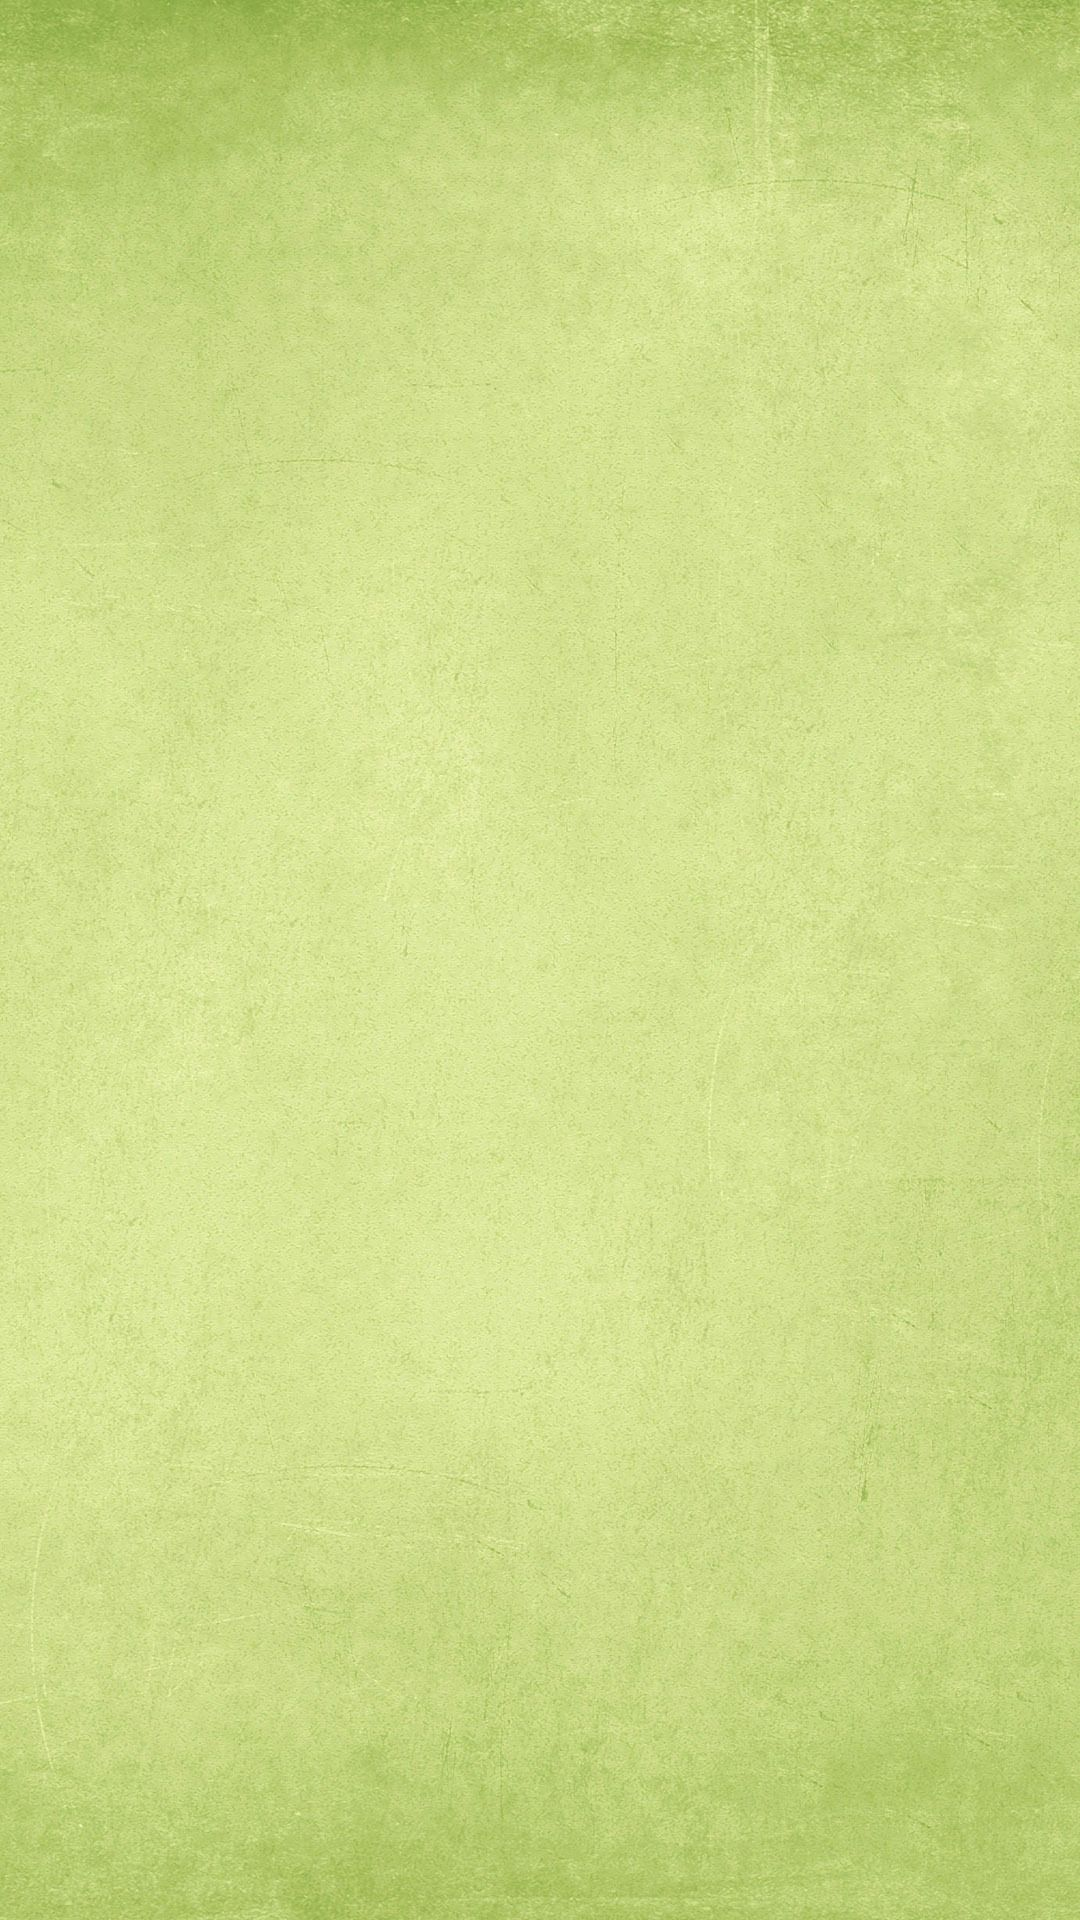 Download green texture pattern iPhone Wallpapers! Tap to